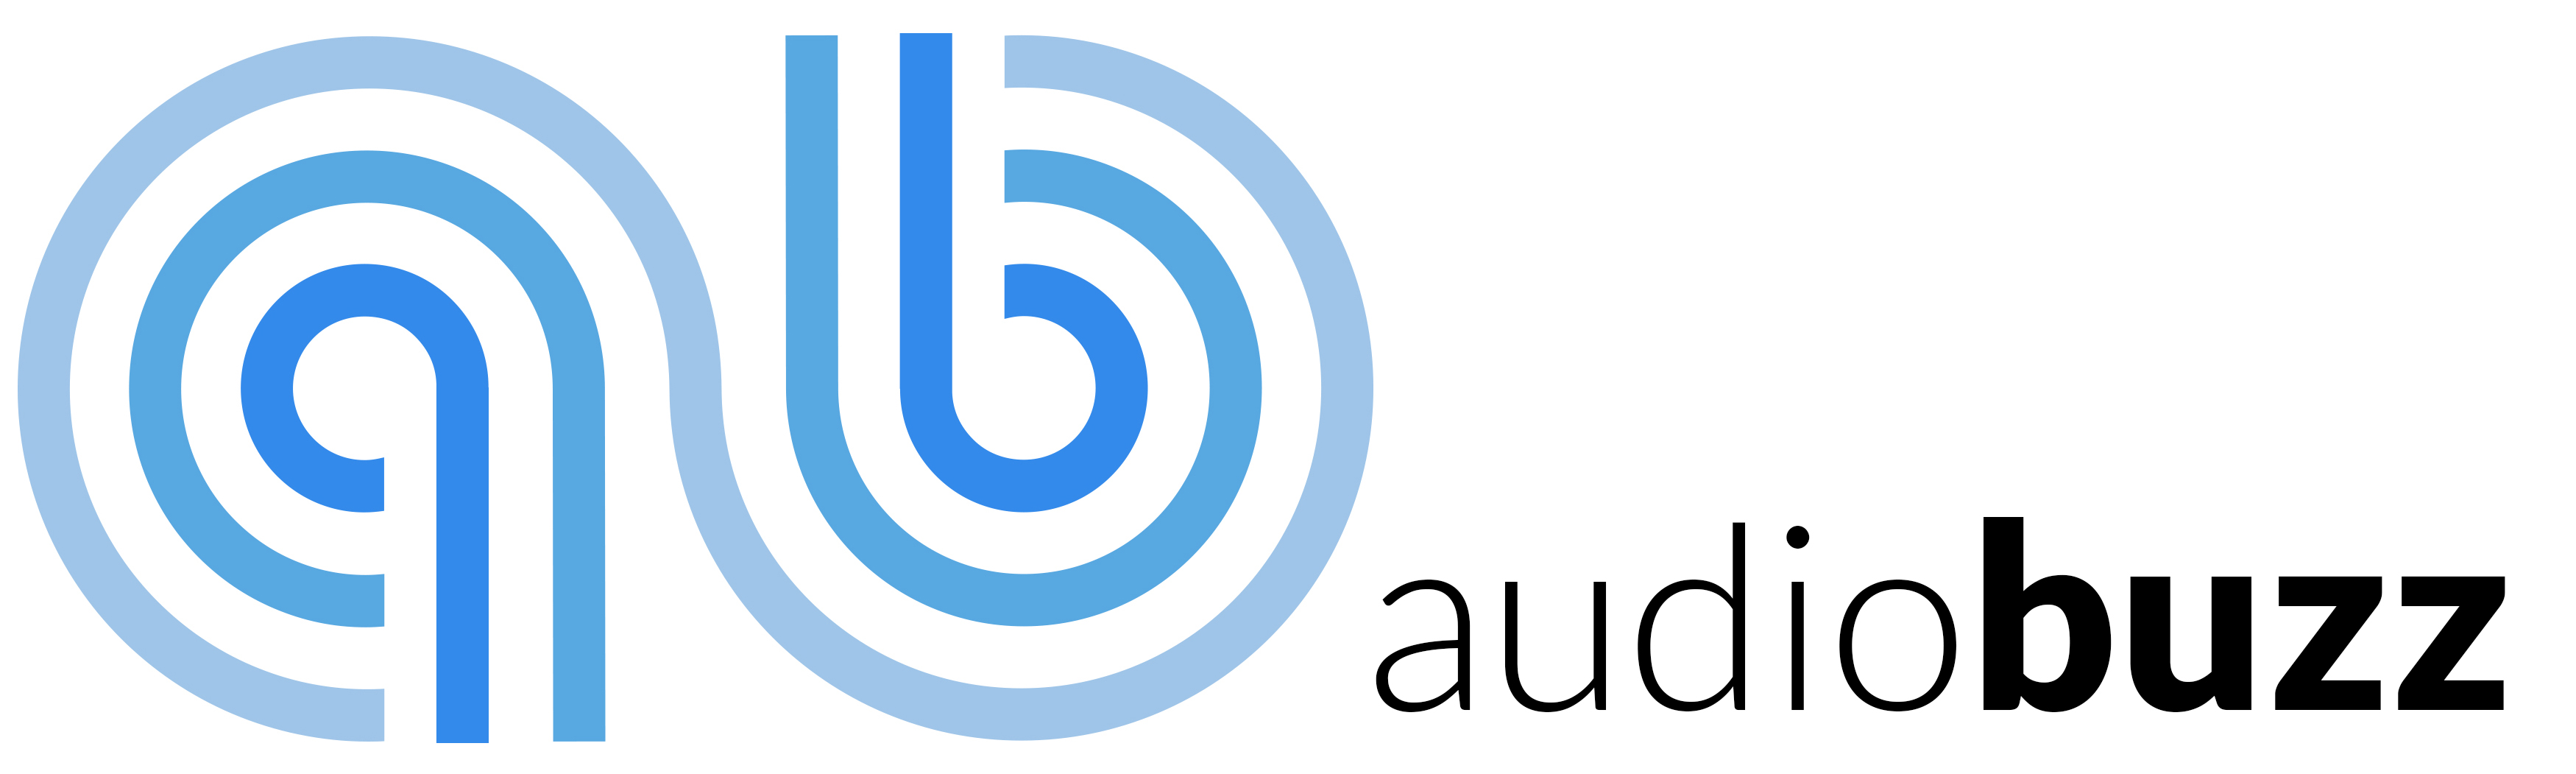 Royalty-Free Music From Audio Buzz Available At Great Rates And A Perpetual License For Tunes And Vocals Across Genres